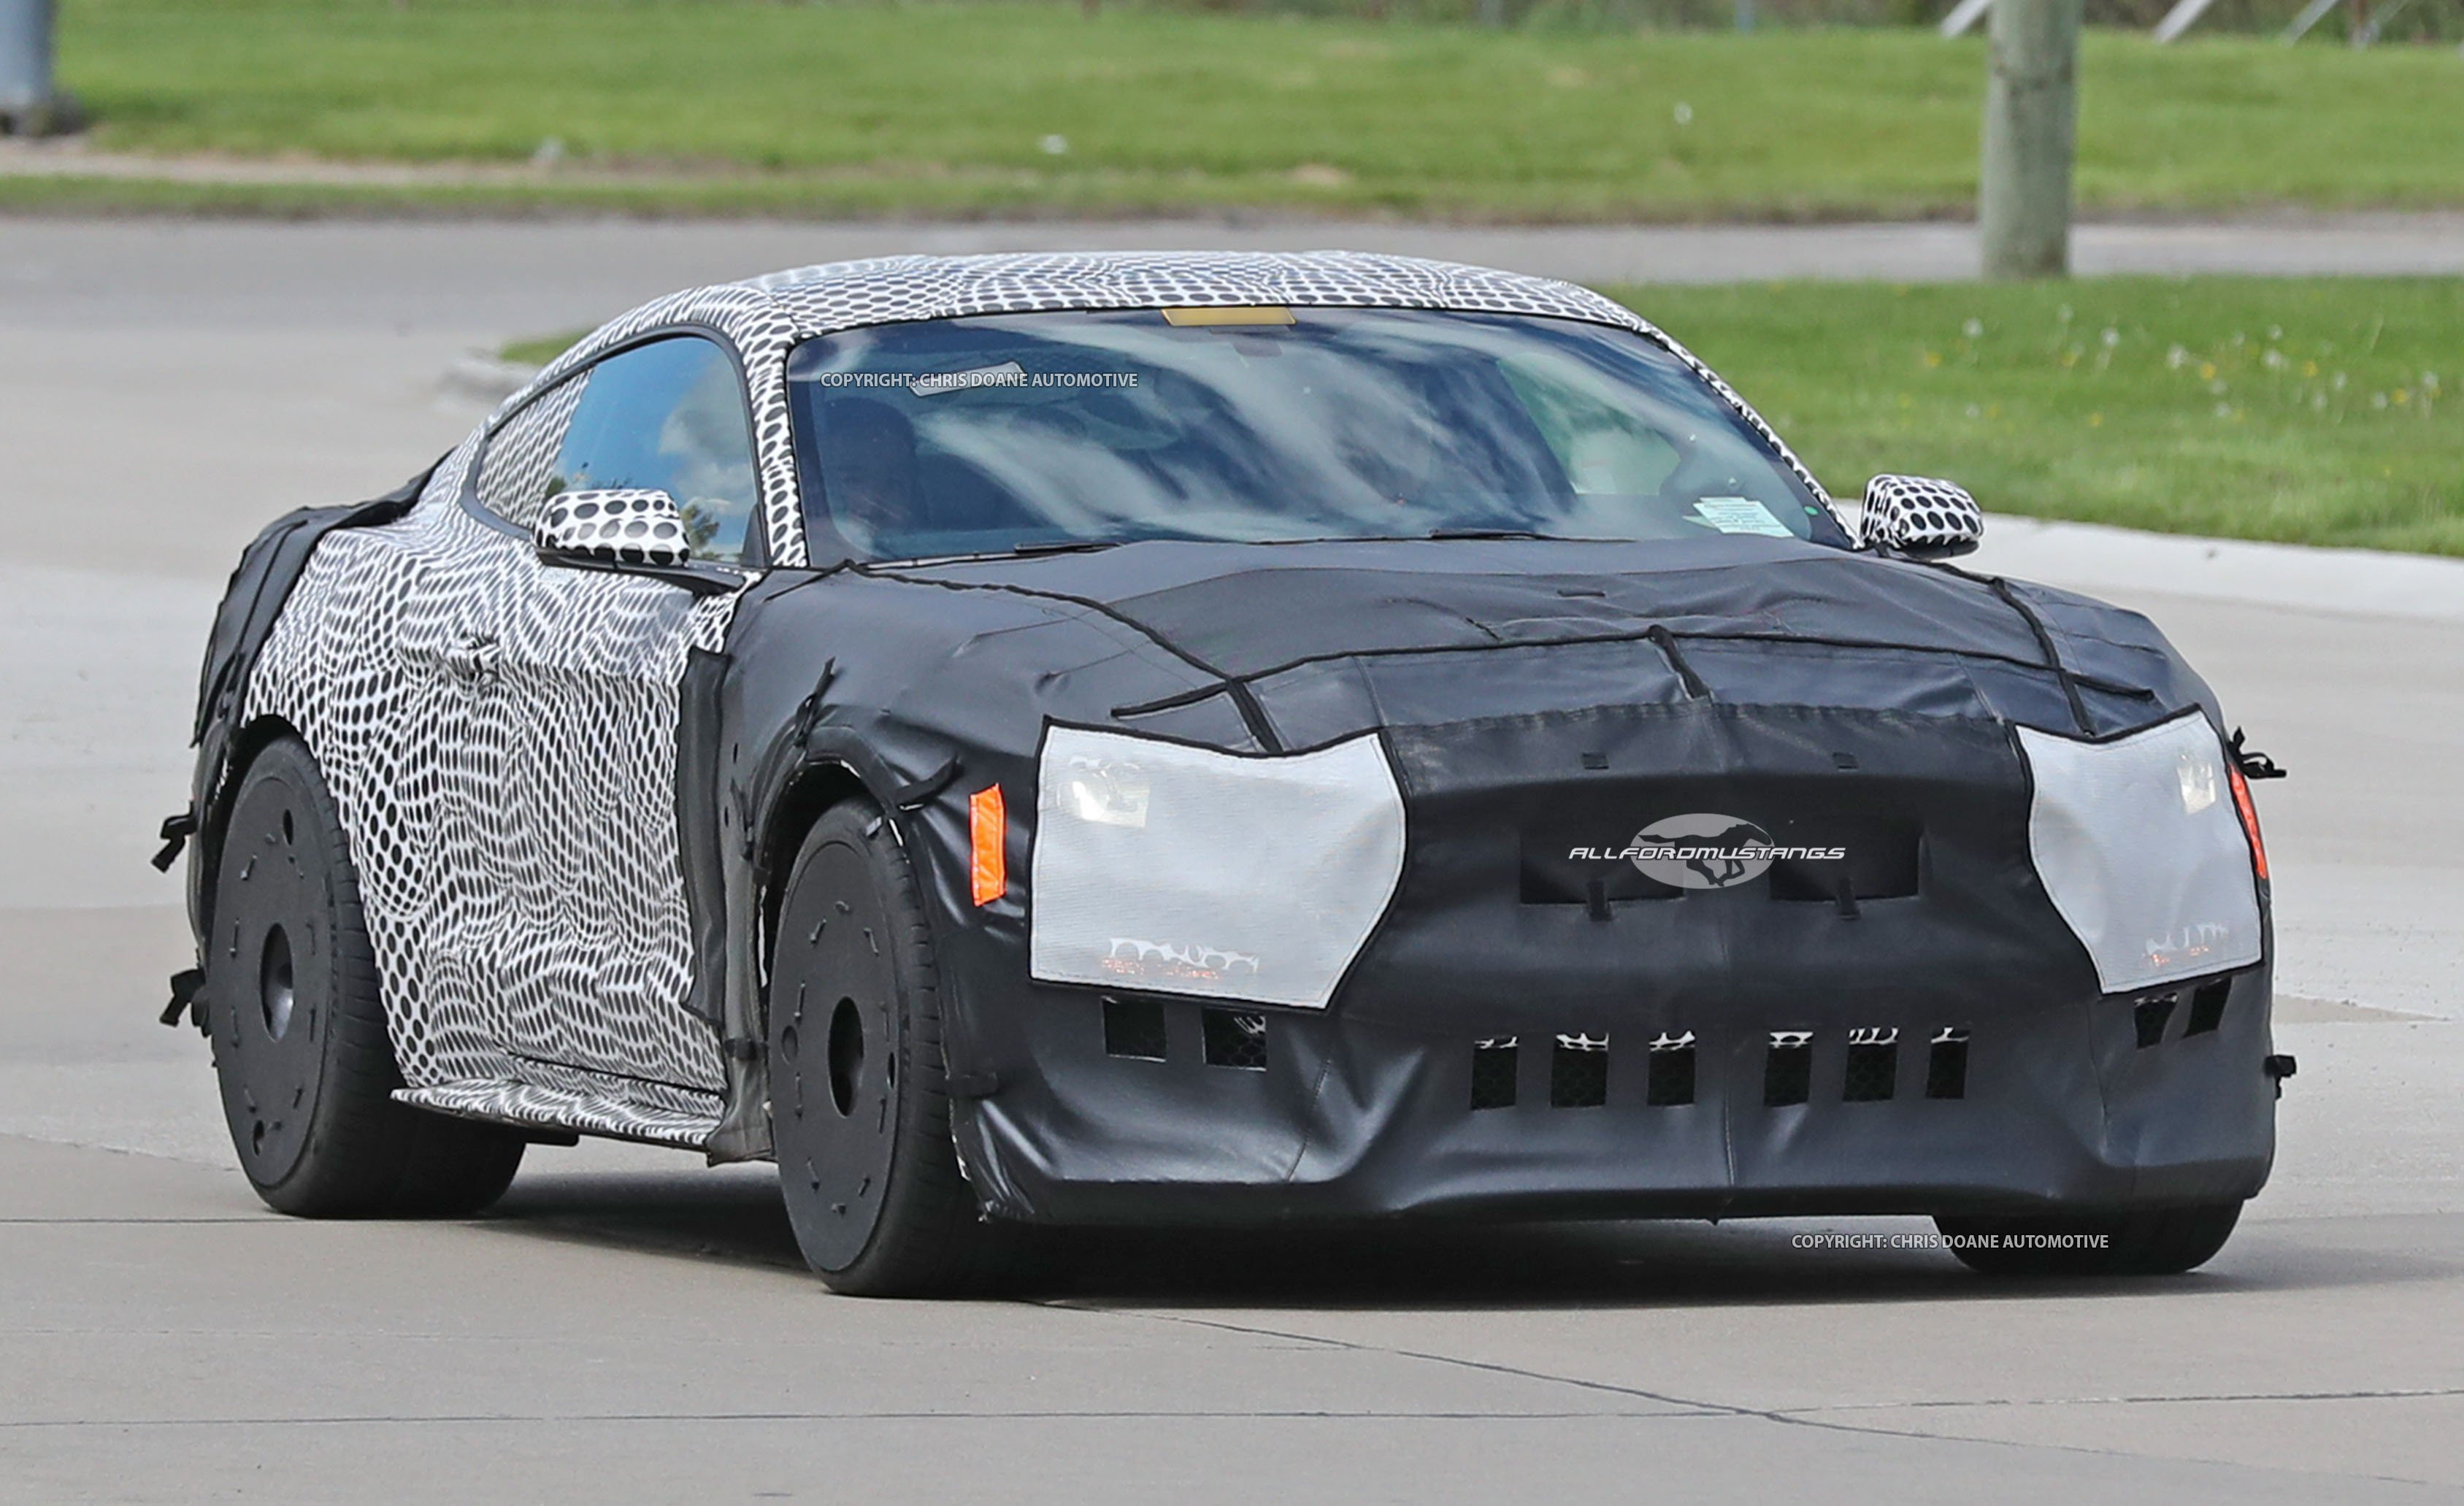 The Shelby GT500 Turns 50 This Year - AllFordMustangs